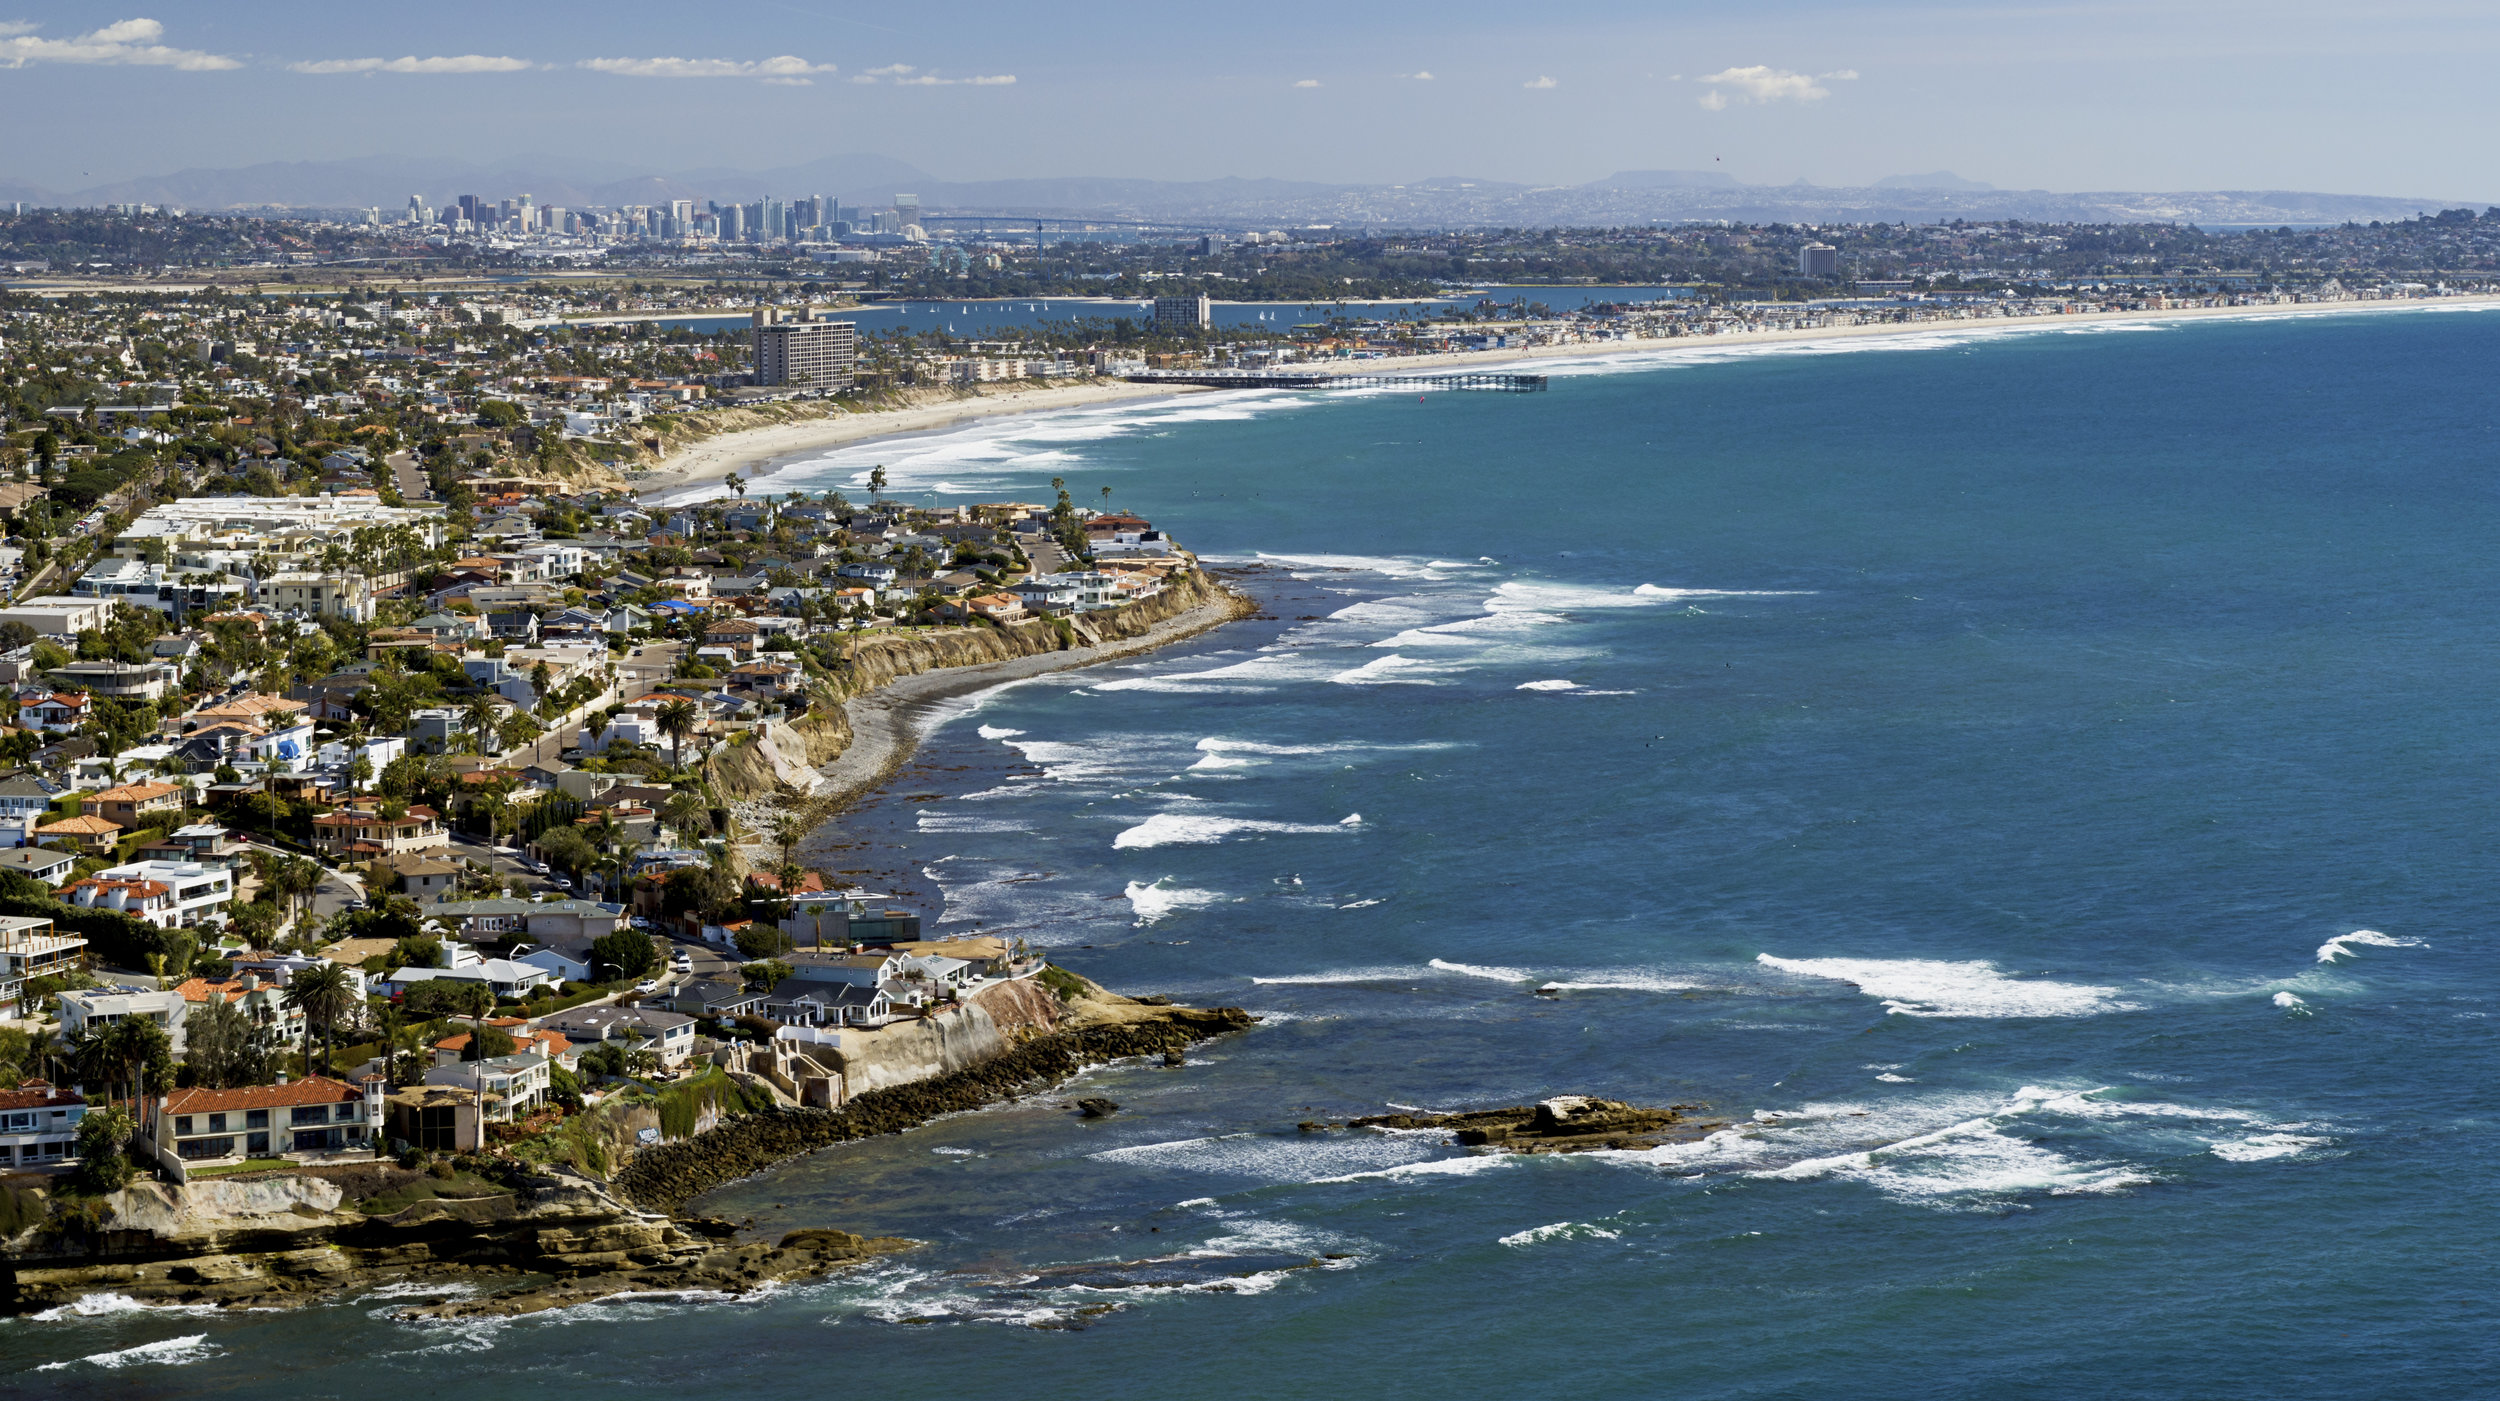 La Jolla - From UCSD to the beaches, we love droning here